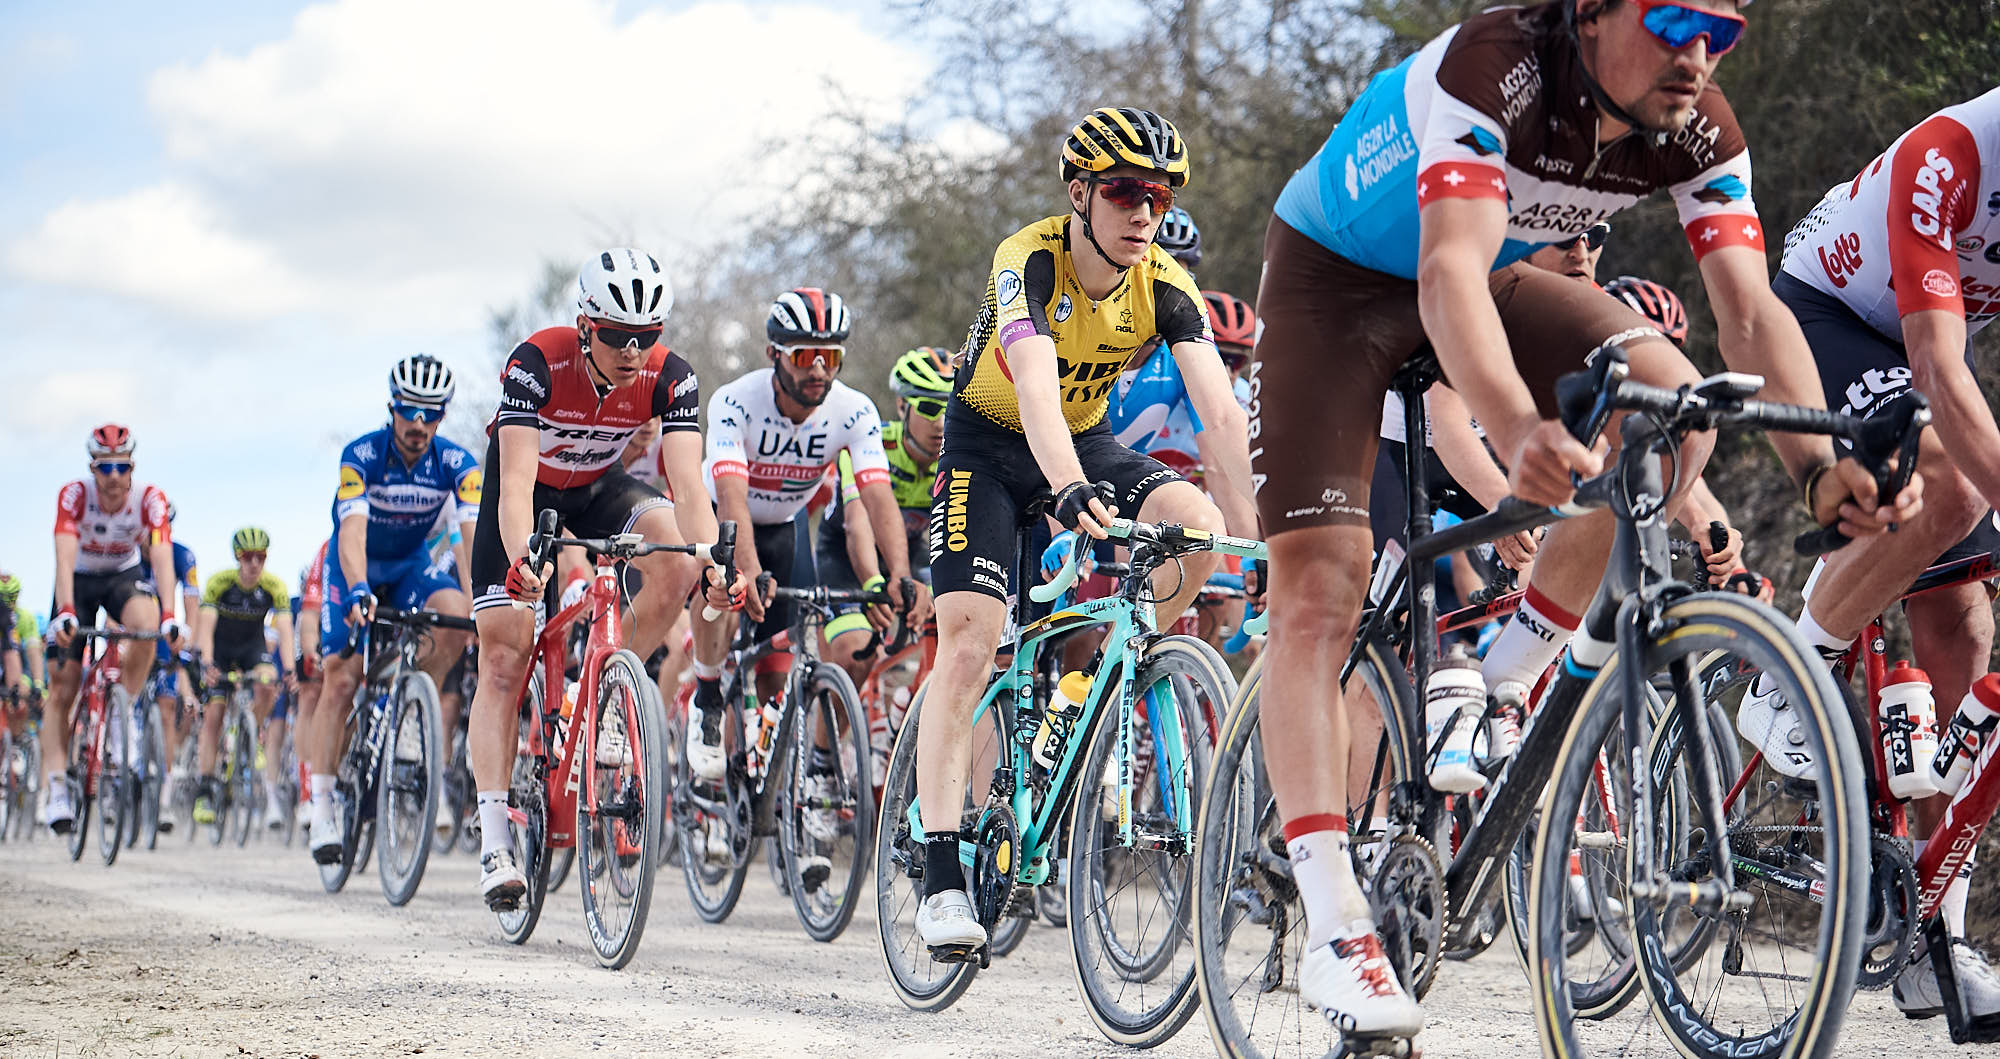 Peloton during Strade Bianche